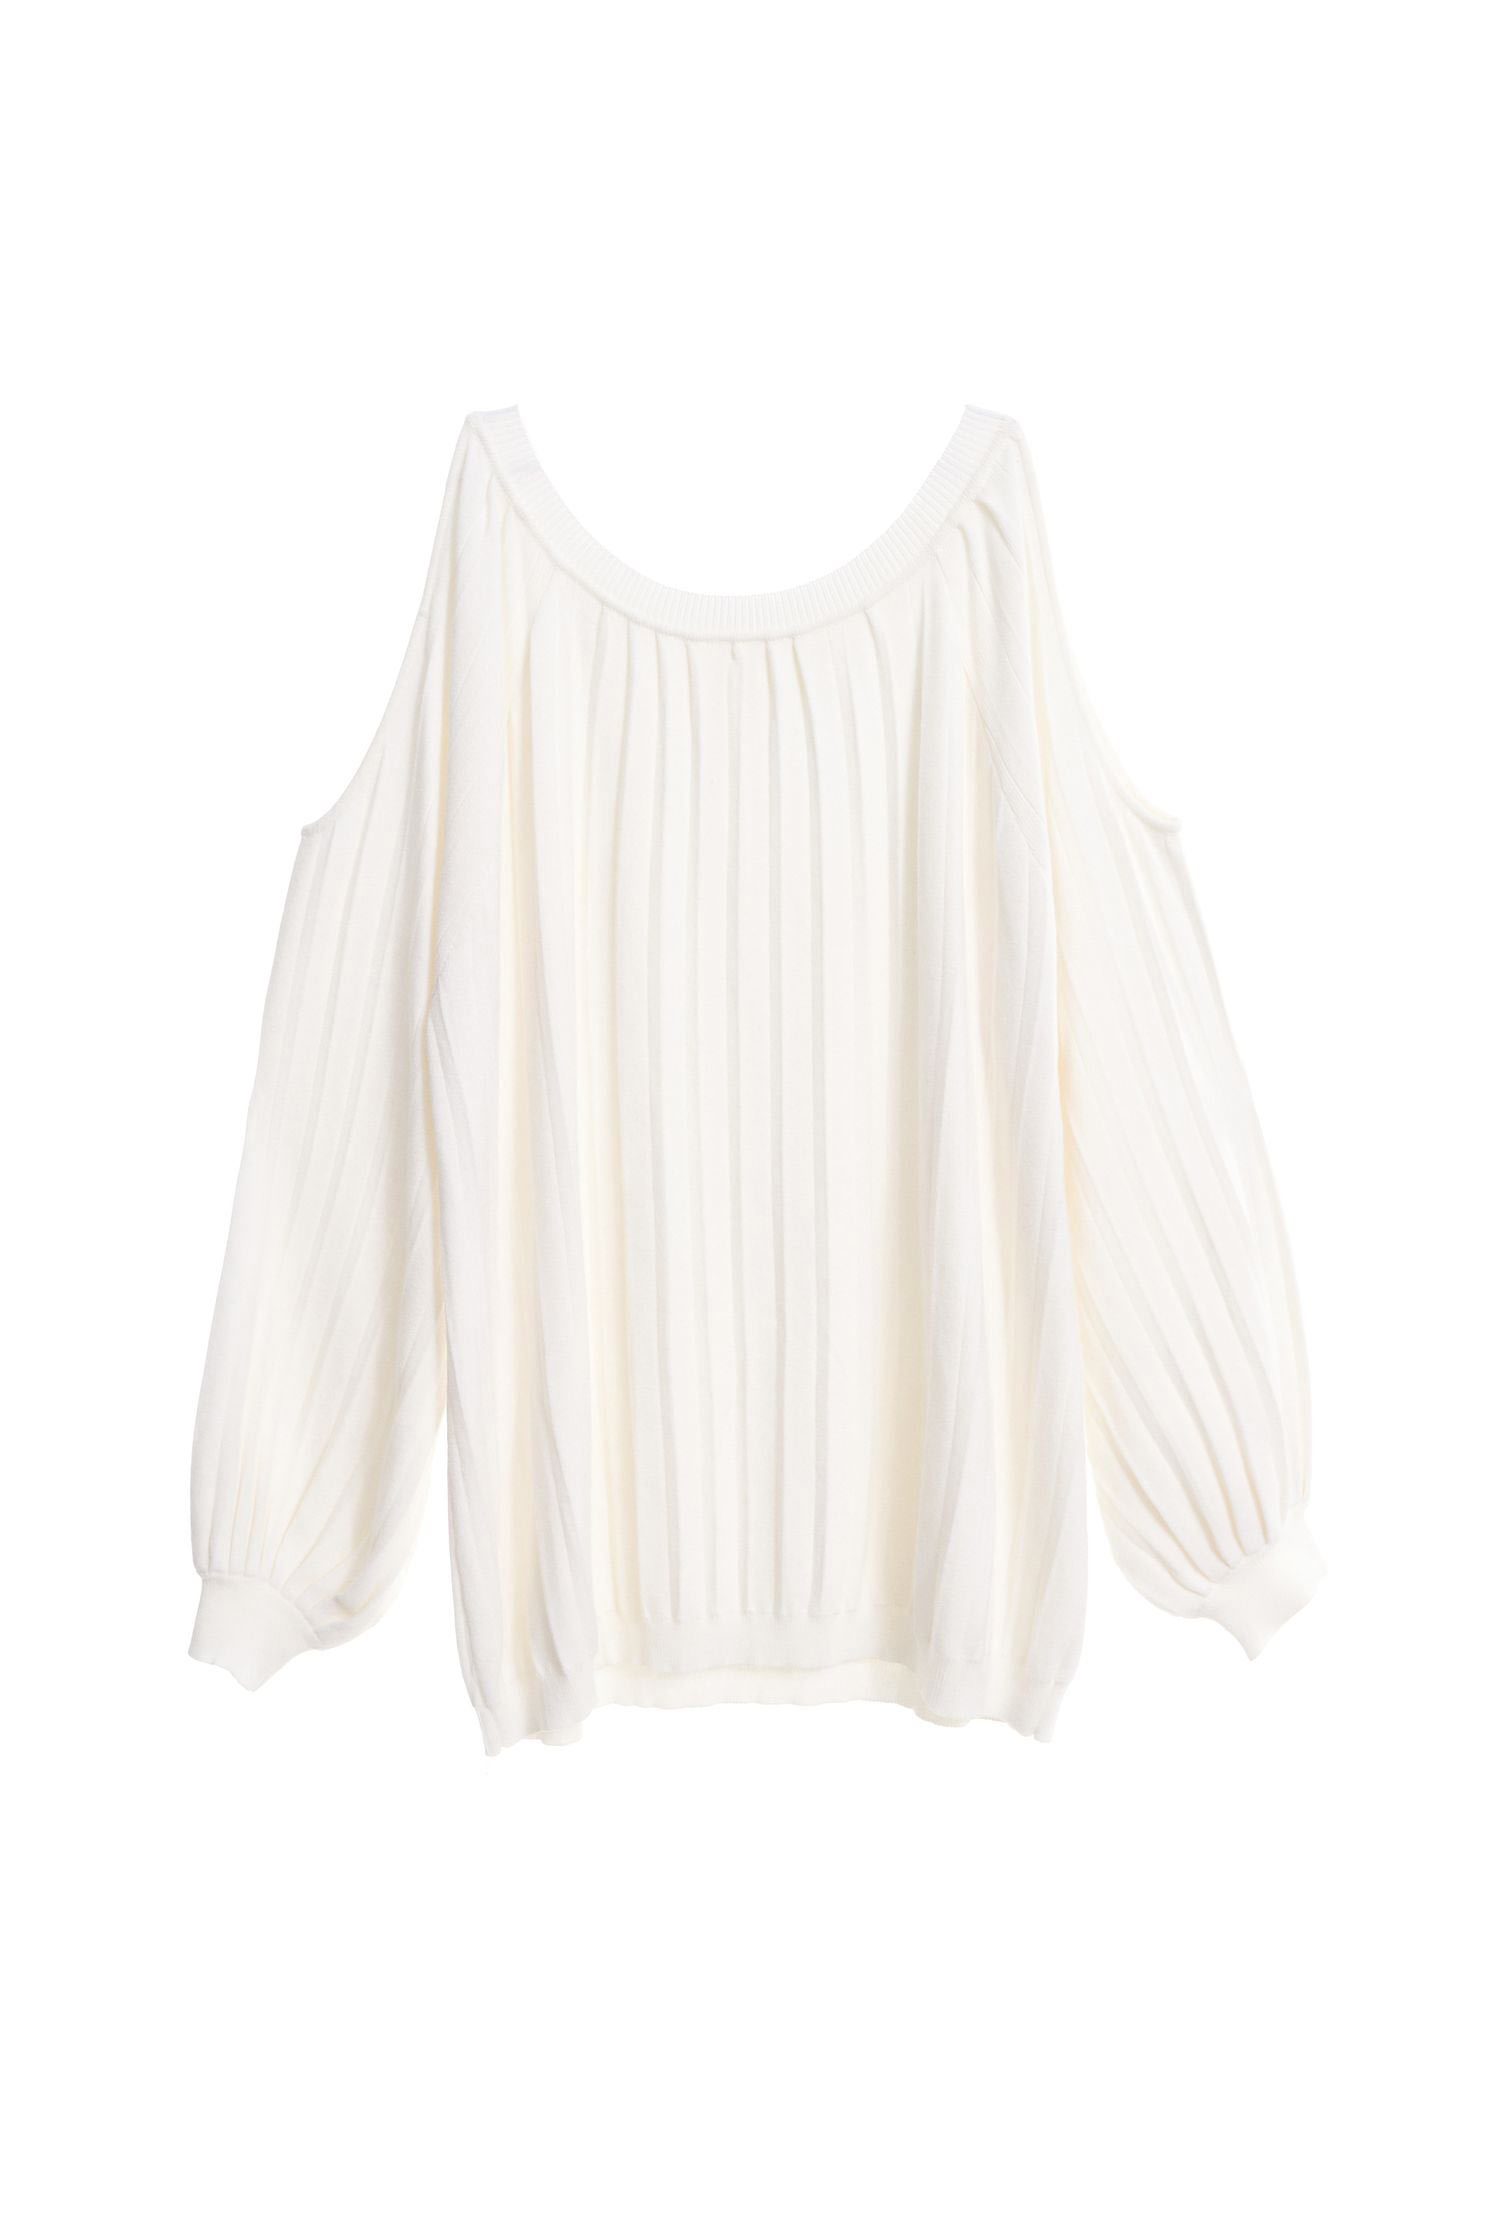 Pleated hollow knitting top